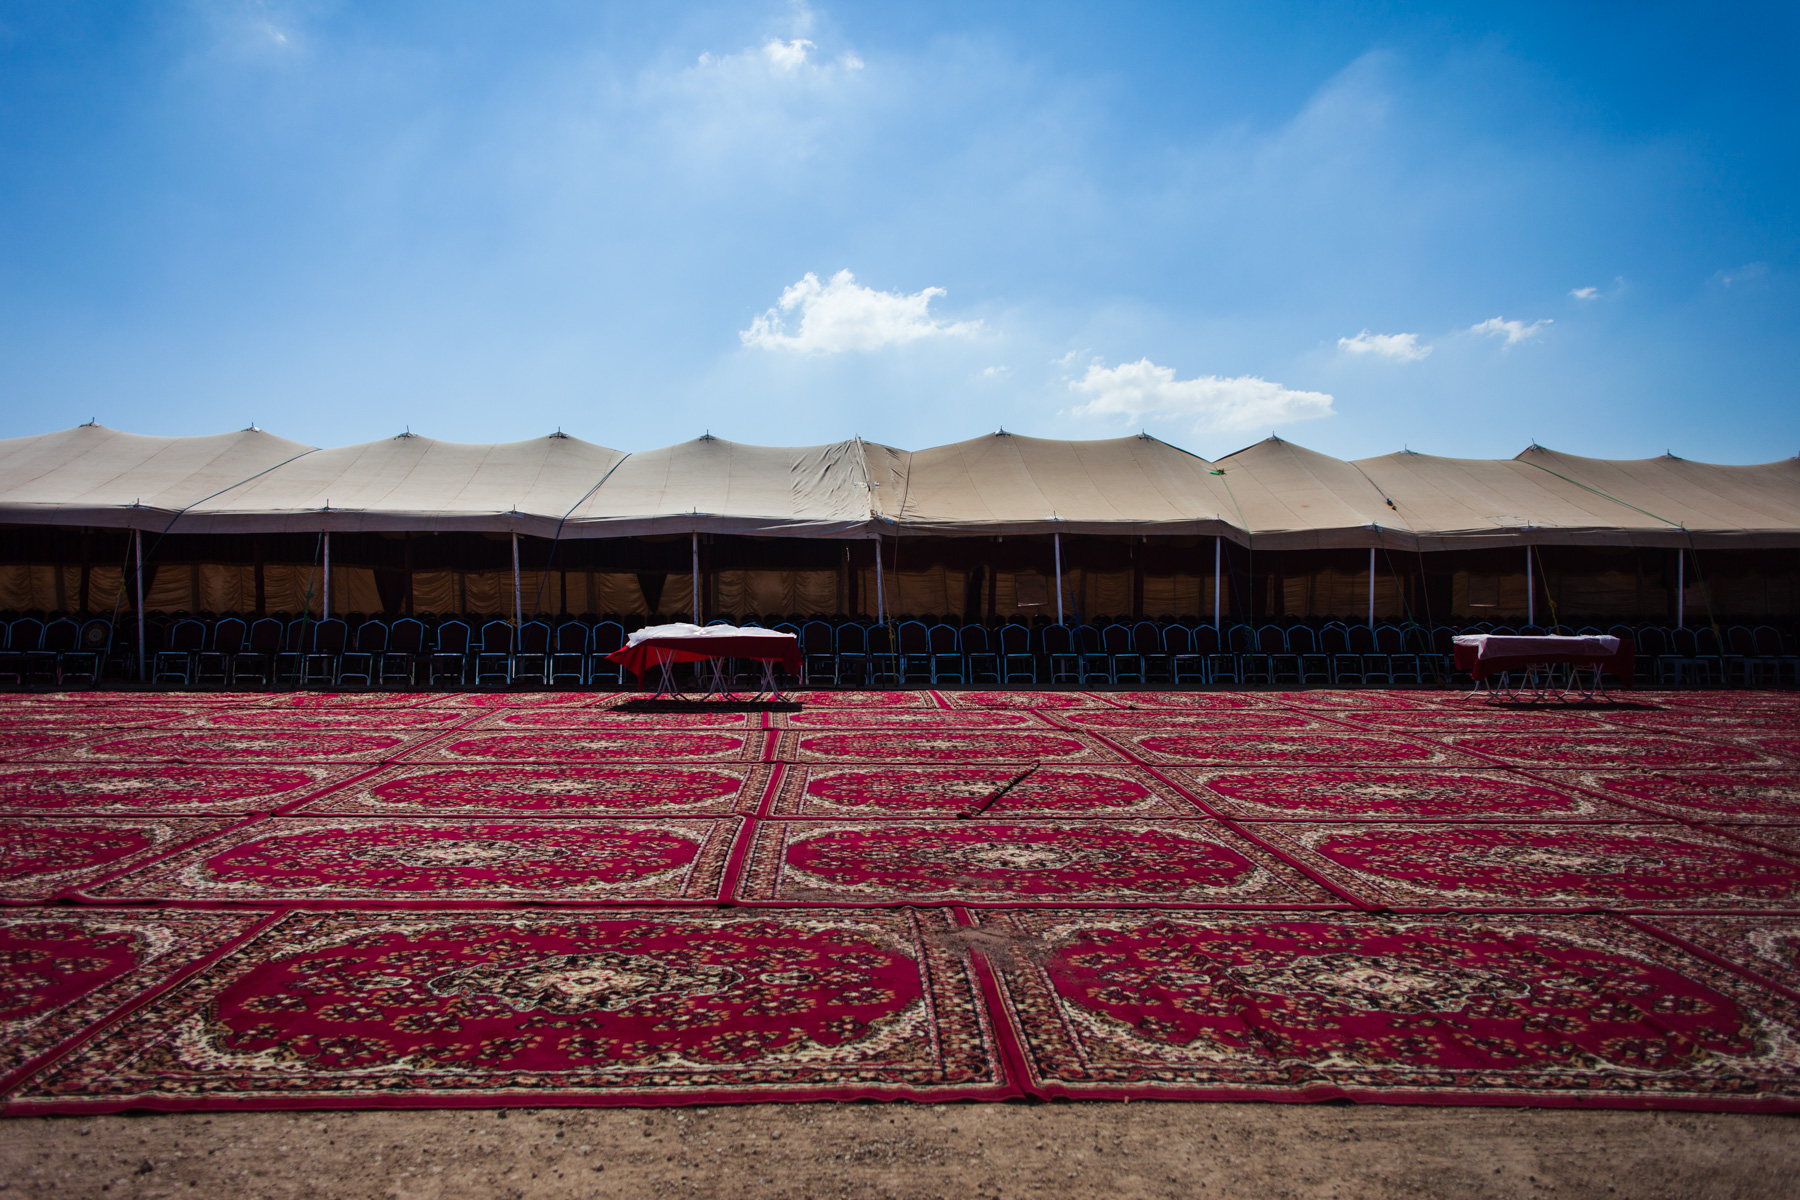 A political campaign rally tent is seen outside Karak, Jordan, on Sept. 3, 2016. Rather than hosting rallies in the streets, political events in Jordan are usually held in tents, while attendees are served coffee and listen to speeches by candidates.